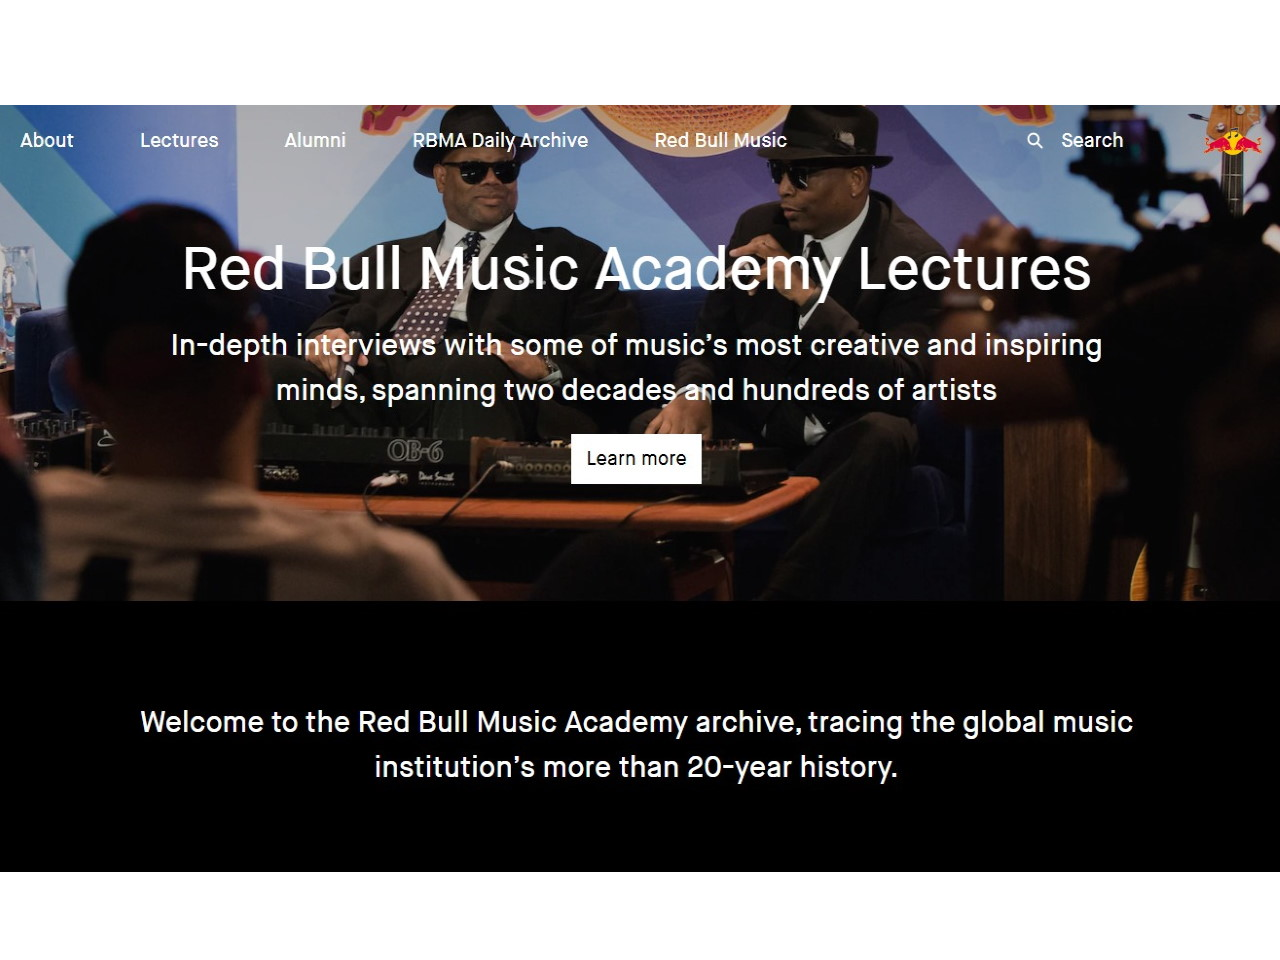 Red Bull Music Academy Archive